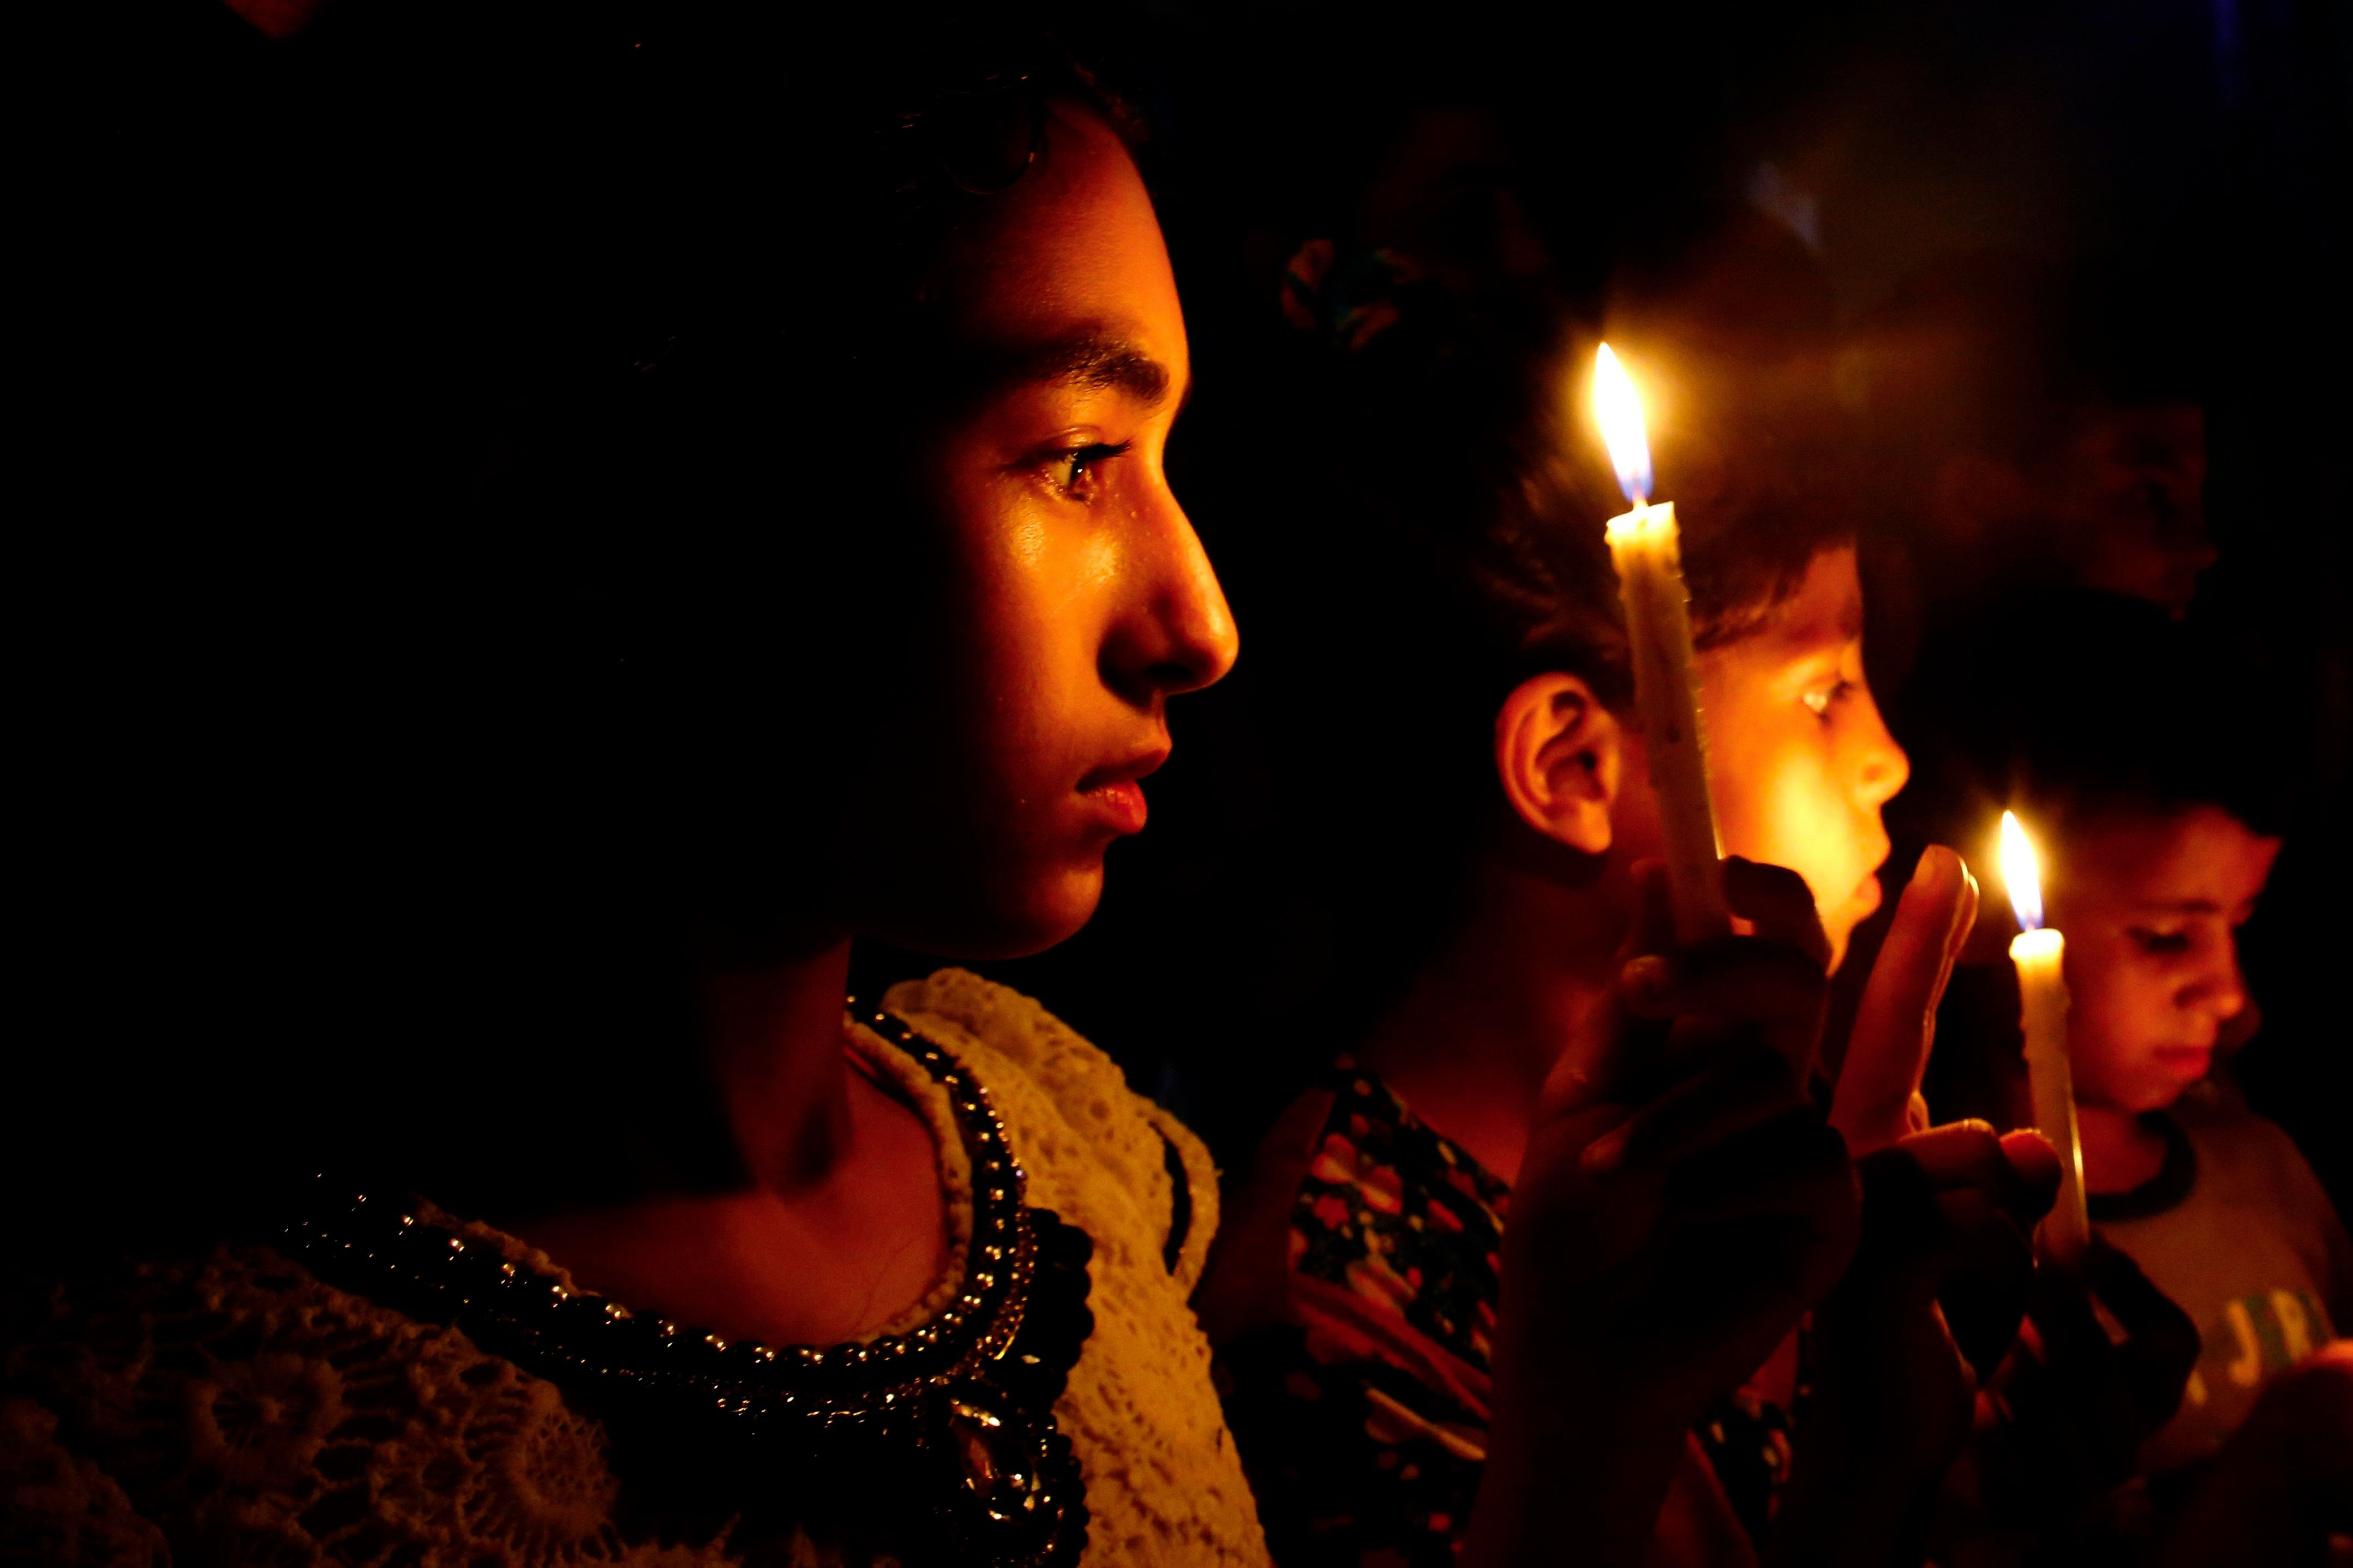 Palestinian children hold candles during a protest against the blockade on Gaza Strip in Gaza City on July 14, 2017. The United Nations warned earlier in the month that the Gaza Strip may already be 'unlivable', after a decade of Hamas rule and a crippling Israeli blockade.